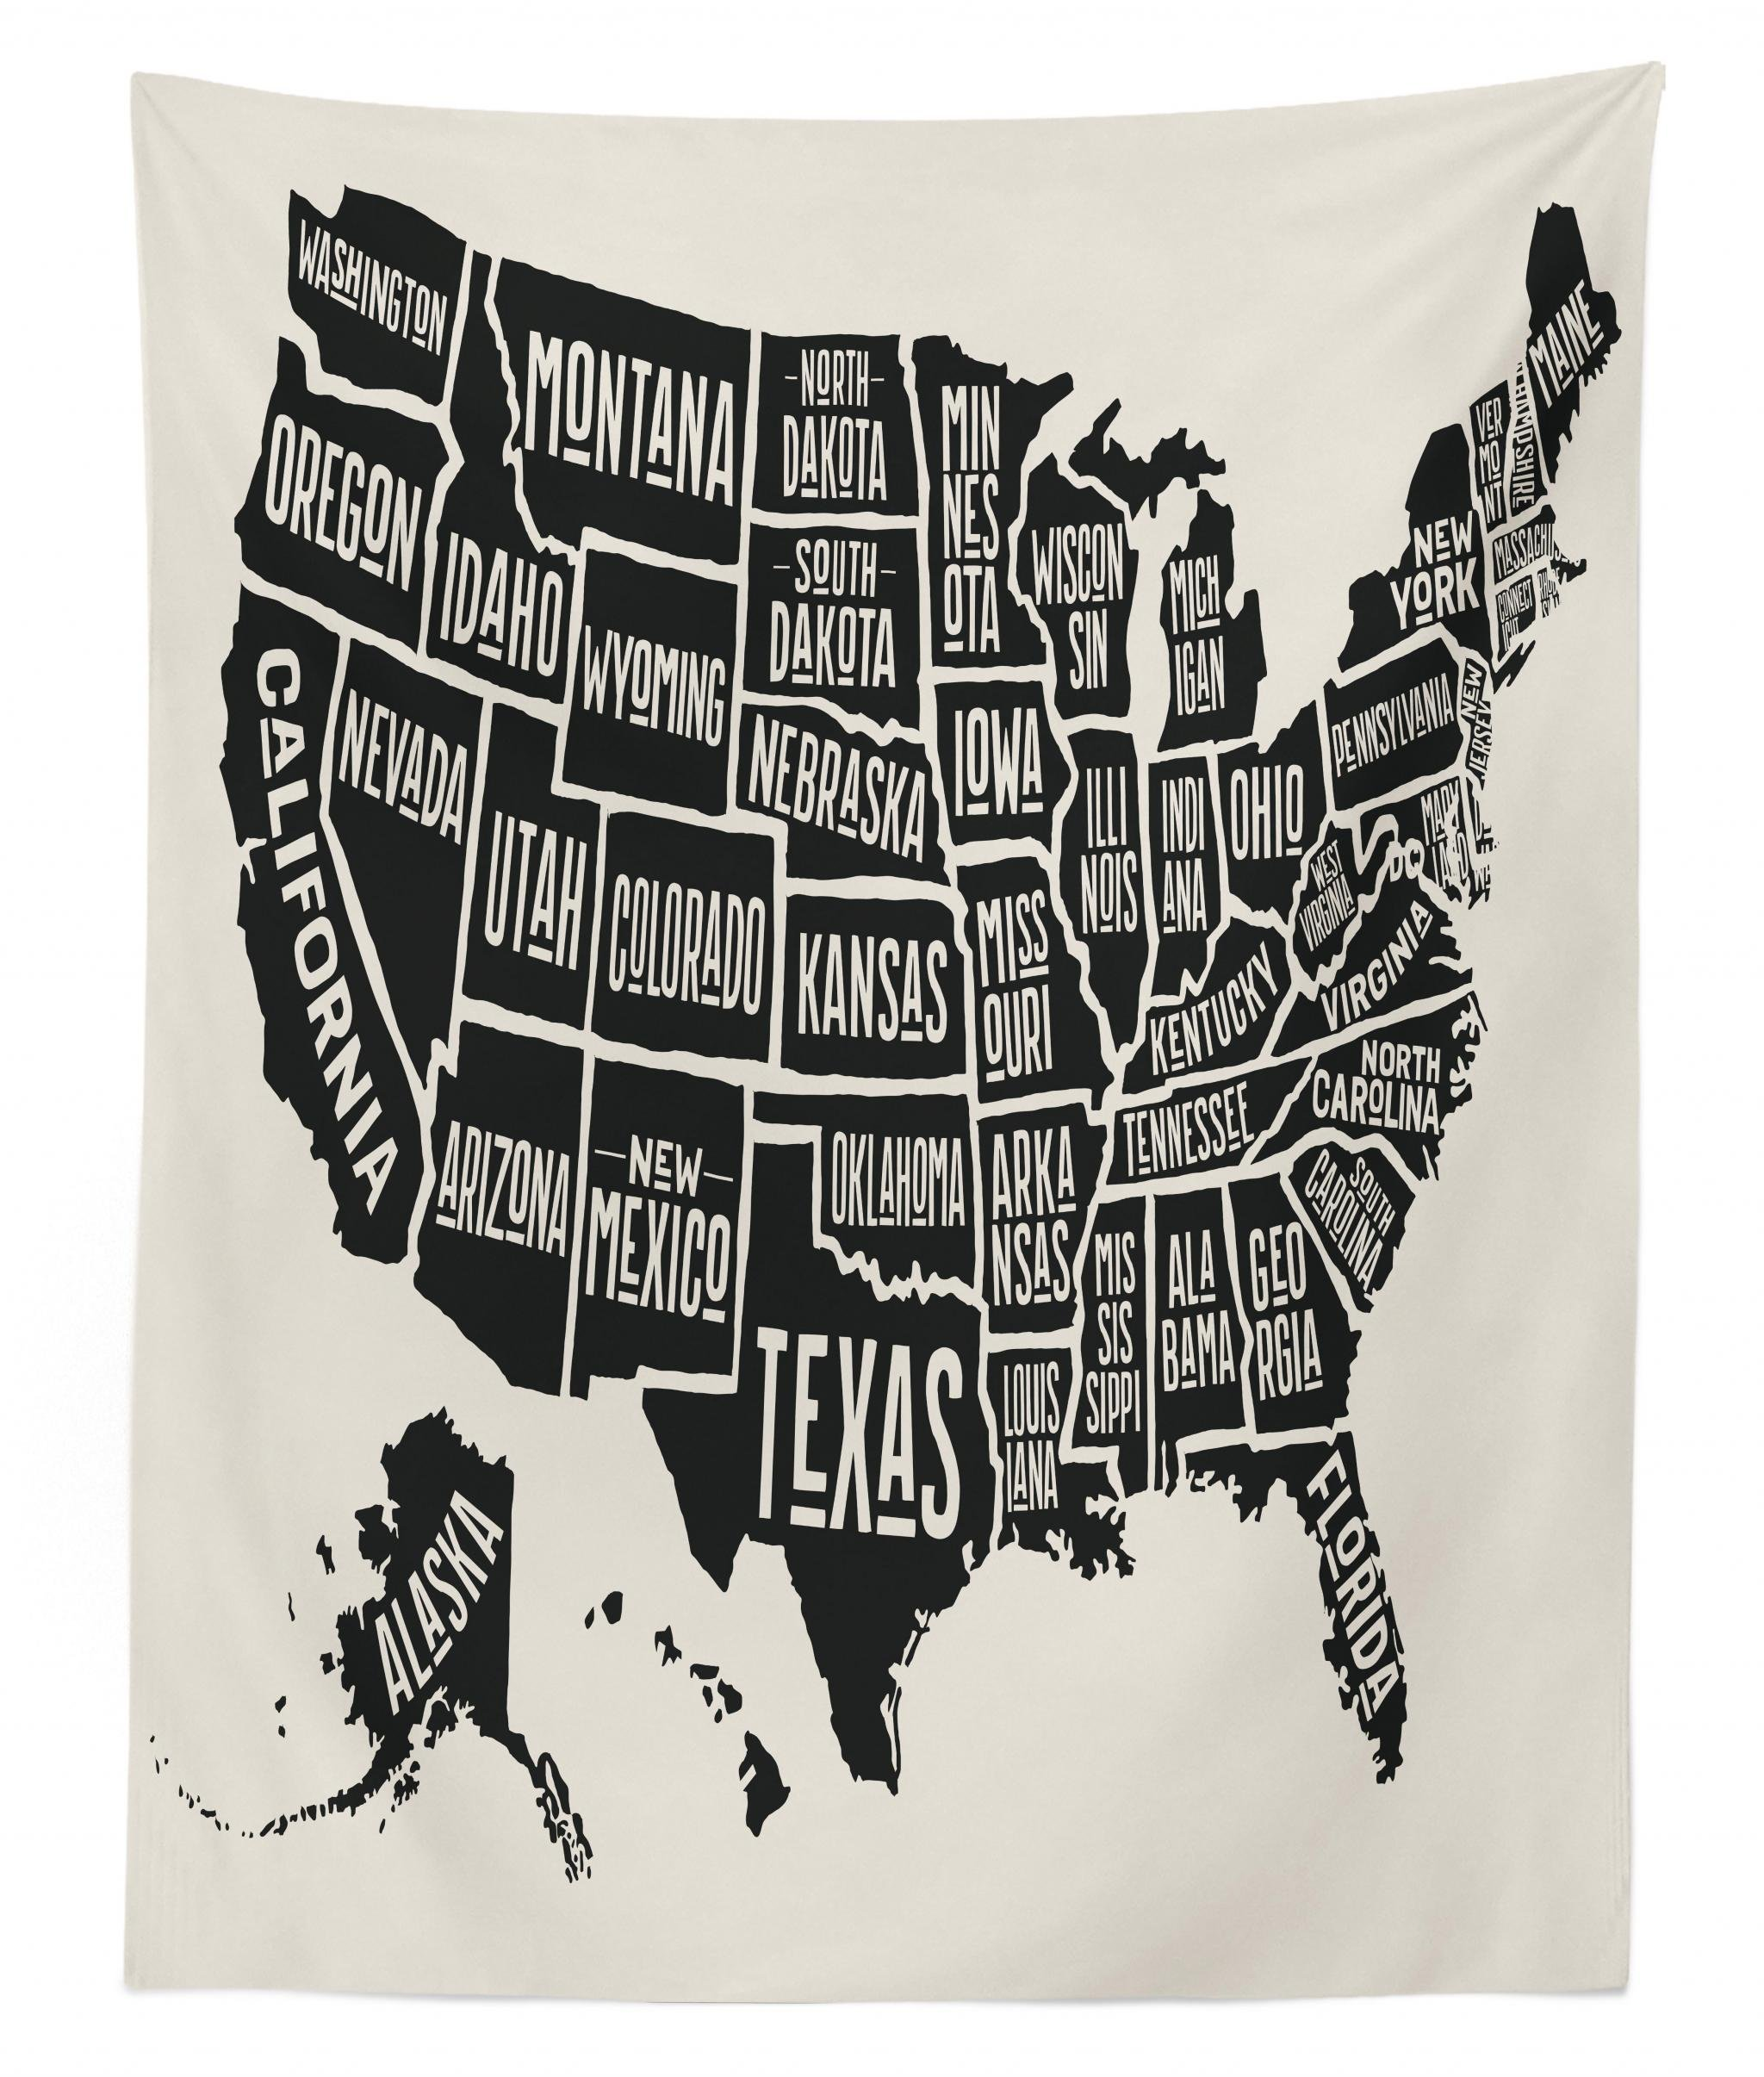 Lunarable USA Tapestry Twin Size, Black and White Style United States of America Map with Written State Names, Wall Hanging Bedspread Bed Cover Wall Decor, 68 W X 88 L Inches, Beige Charcoal Grey